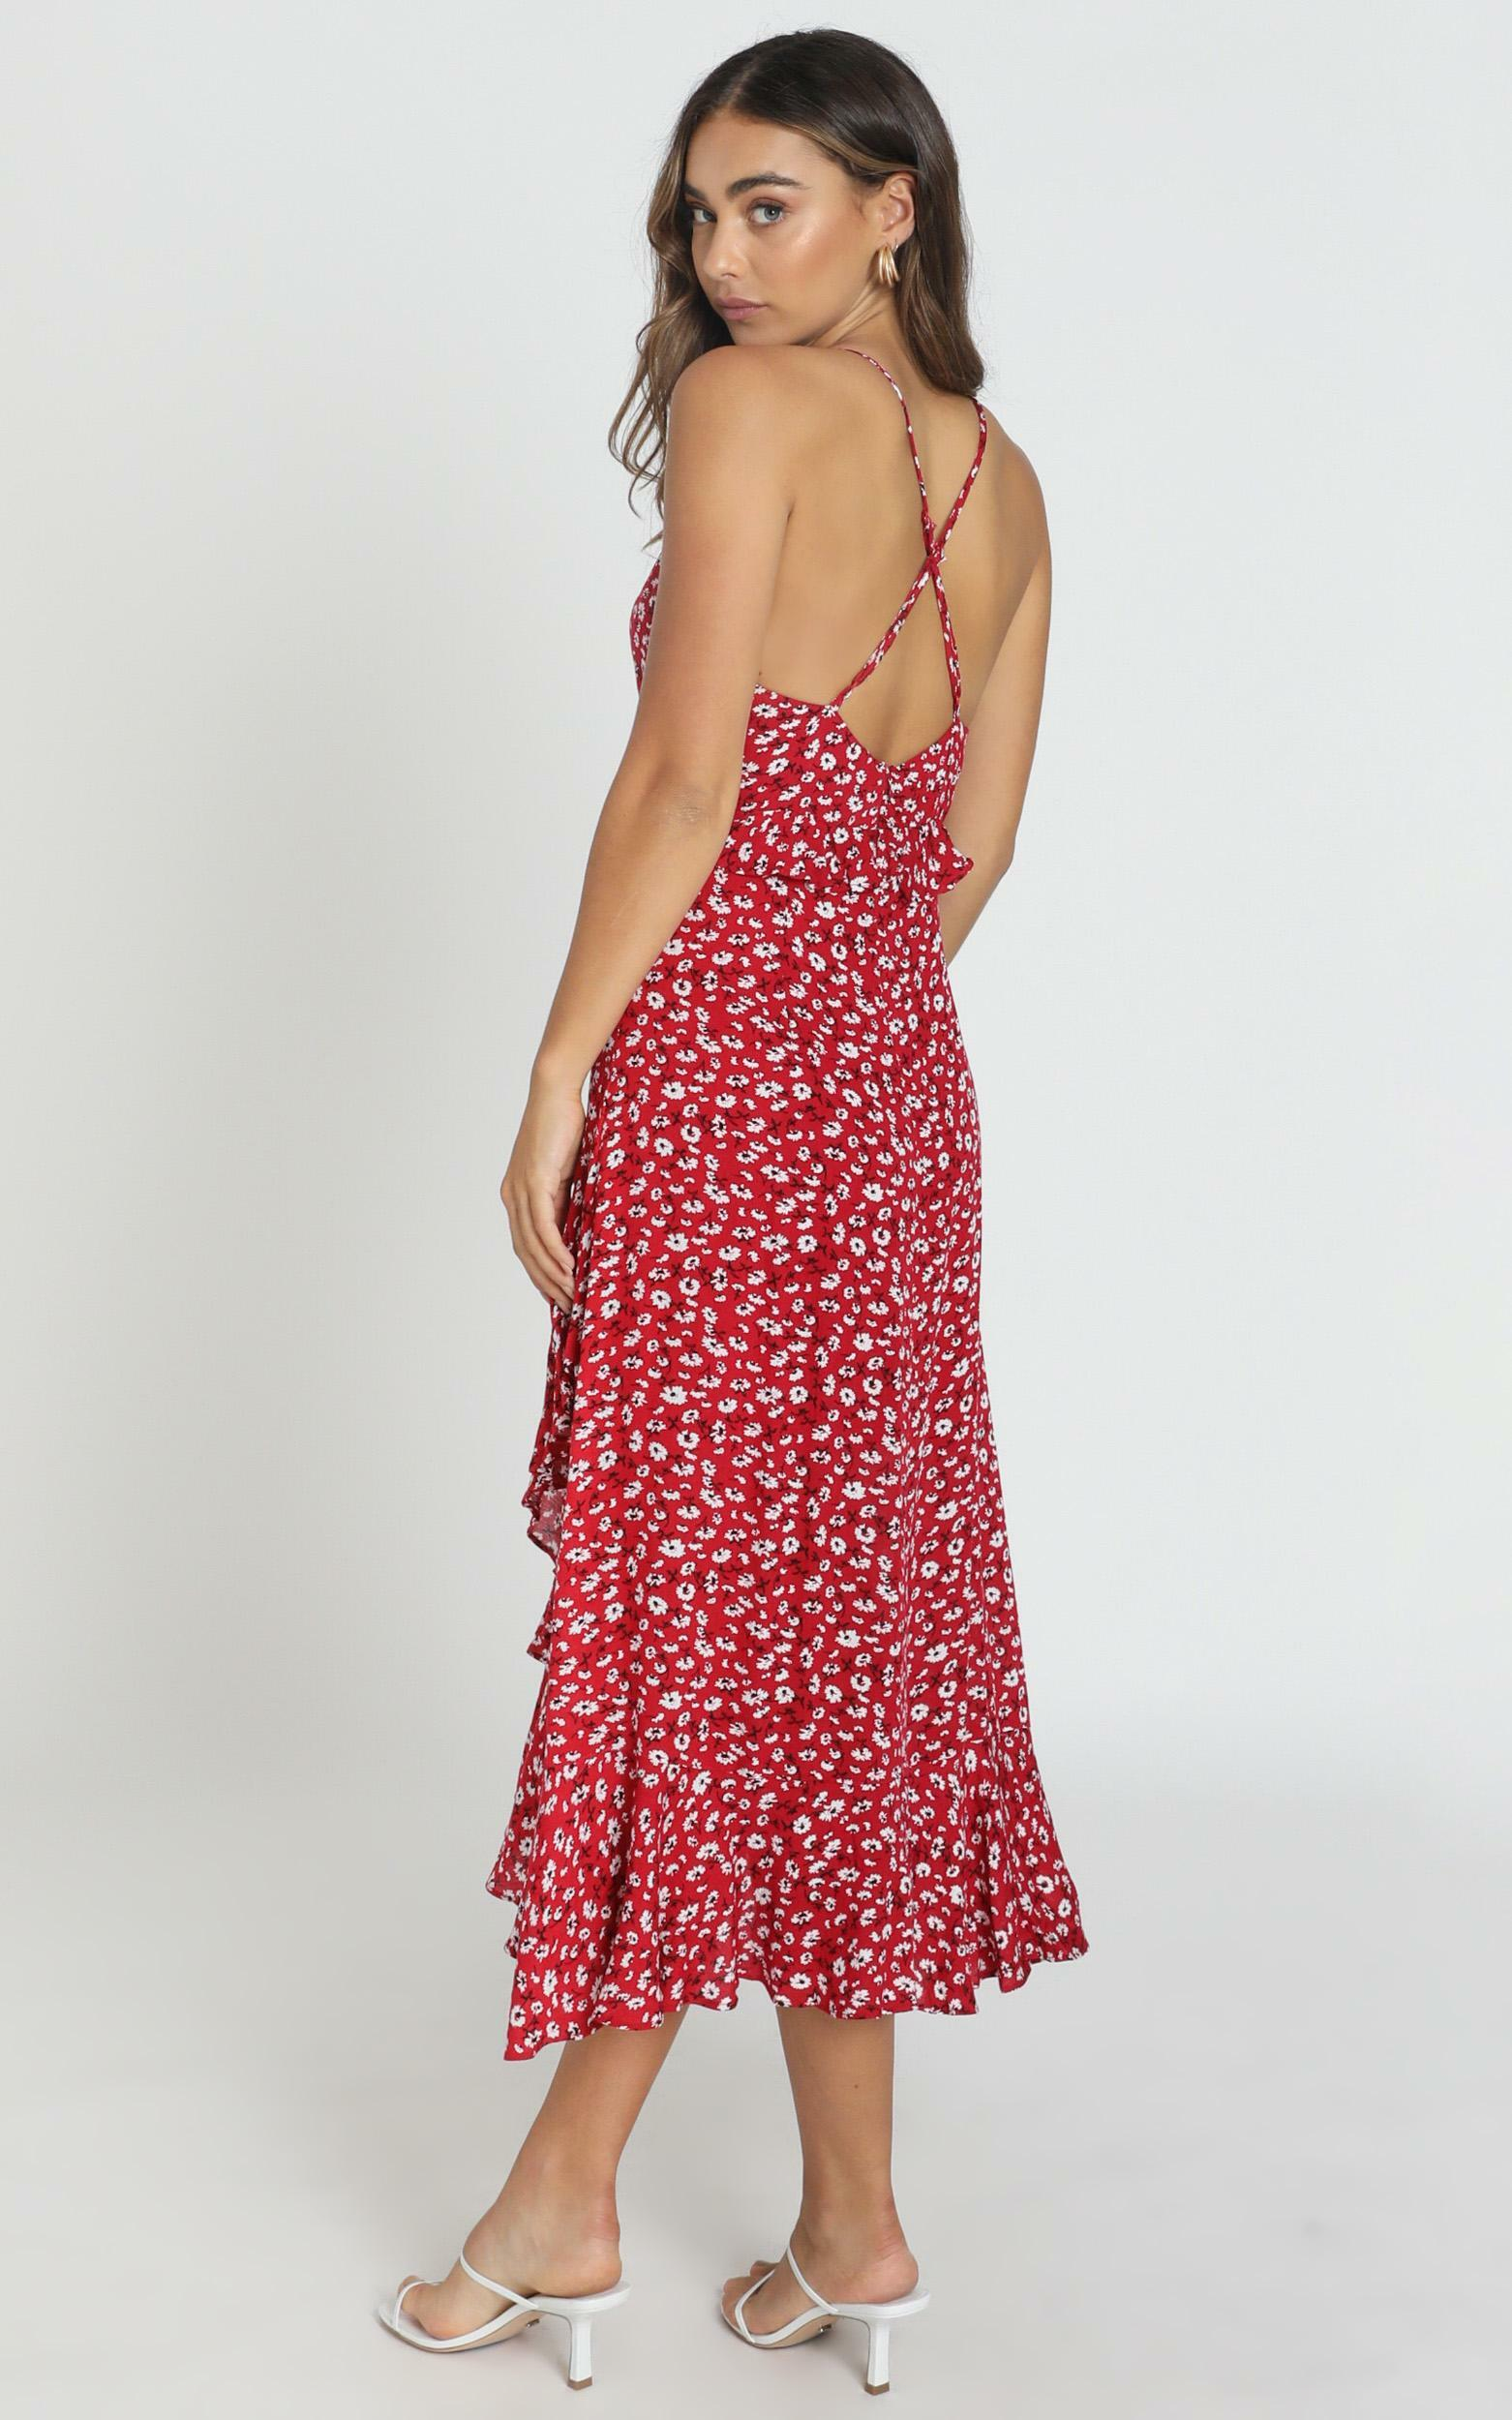 Chelsea Tie Front Midi Dress in red floral - 6 (XS), Red, hi-res image number null